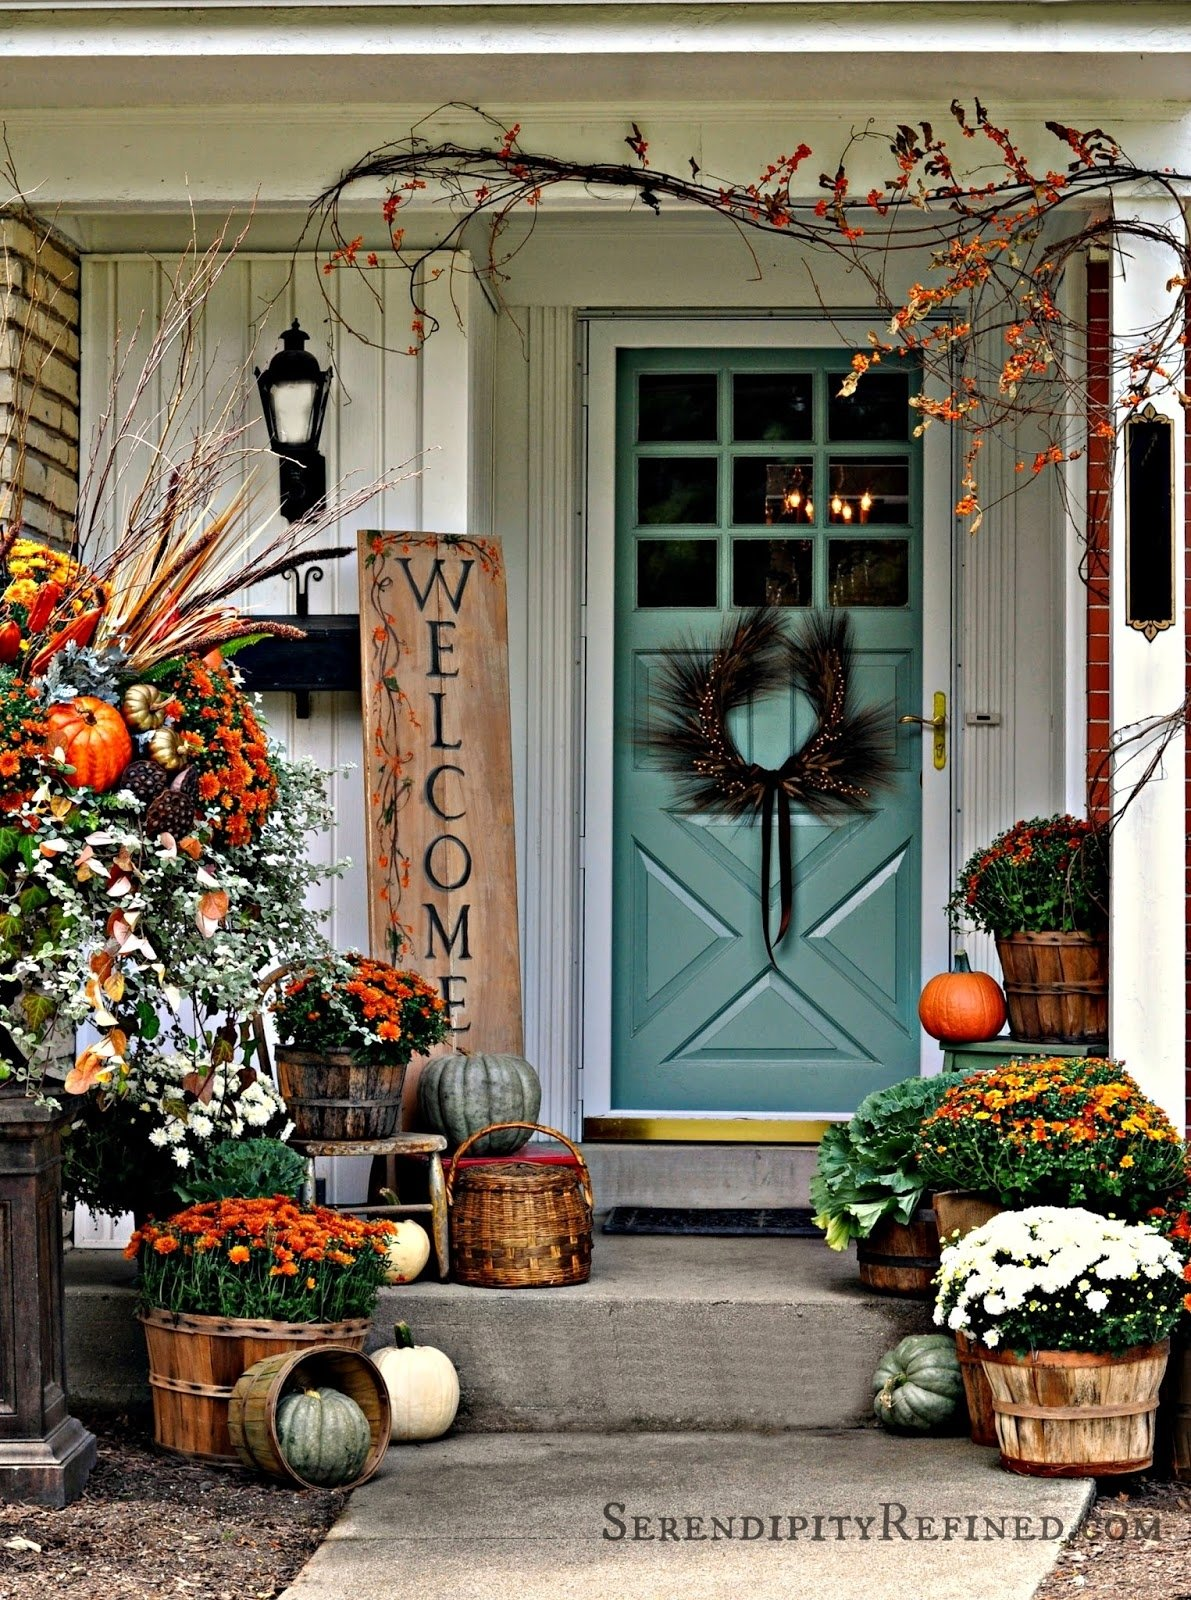 10 Cute Fall Front Porch Decorating Ideas serendipity refined fall harvest porch decor with reclaimed wood 2 2020